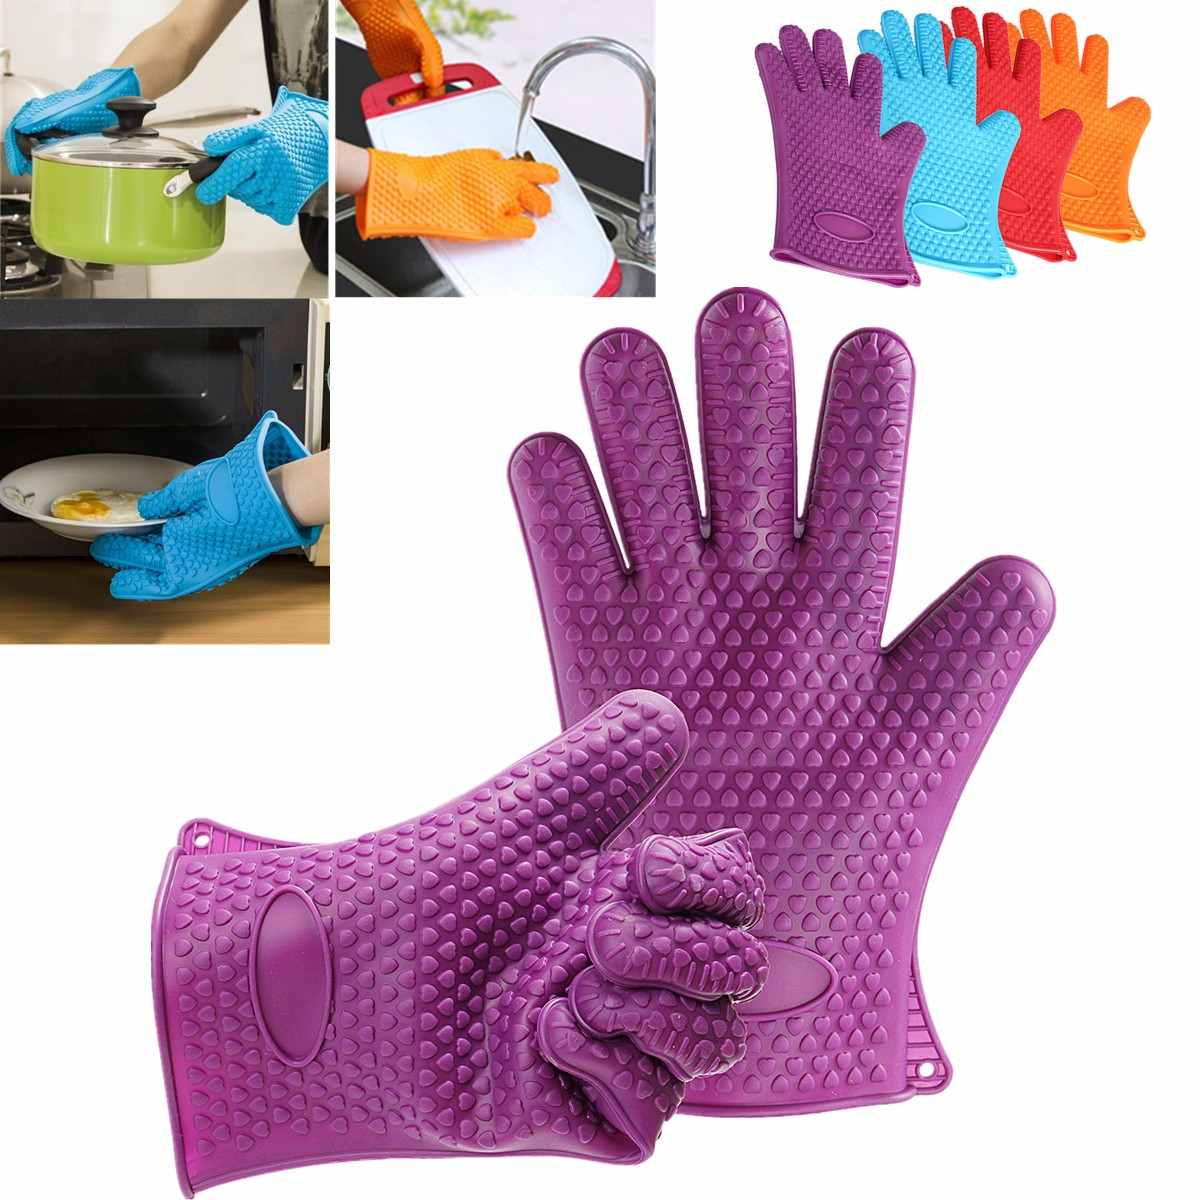 1 Pair food grade Heat Resistant Silicone Kitchen barbecue oven glove Cooking BBQ Grill Glove Oven Mitt Baking Protective gloves торшер odeon 2266 1f